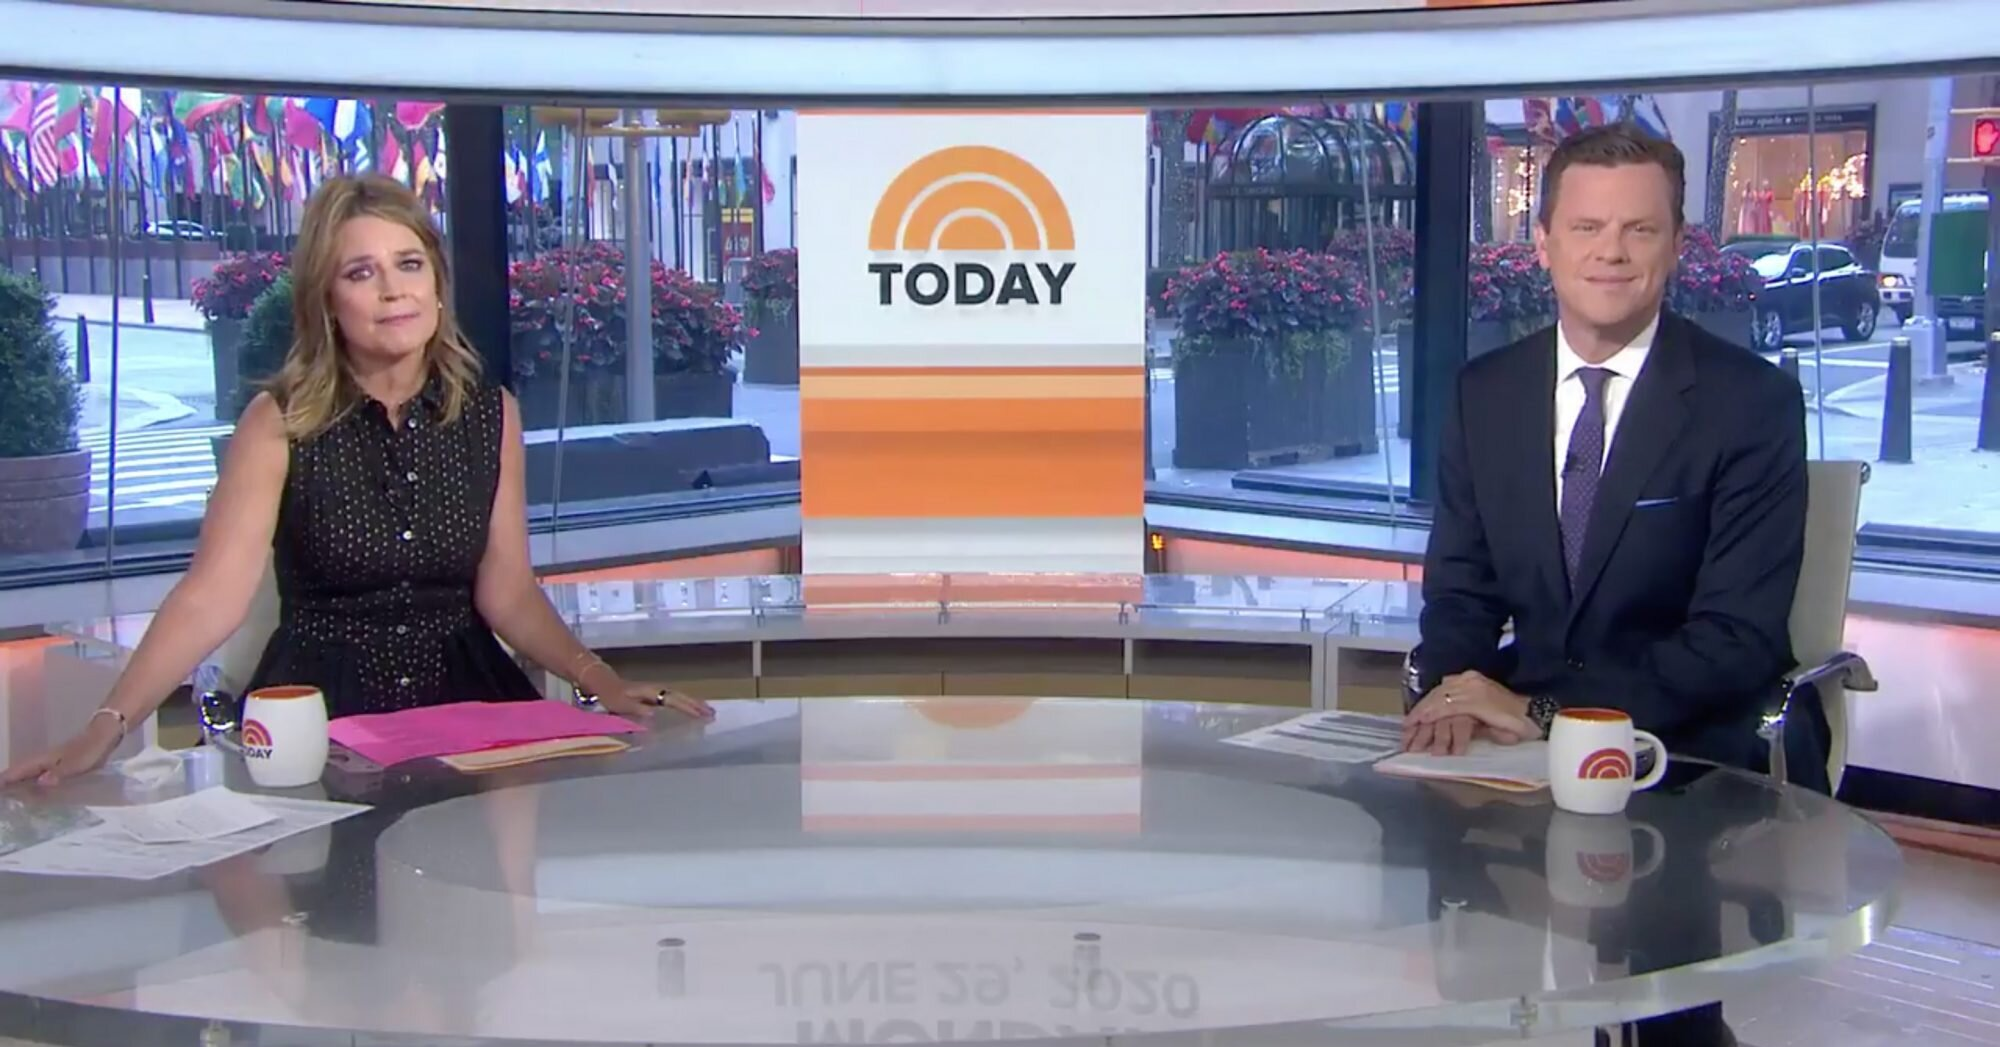 Savannah Guthrie Returns to the Today Show Studio in N.Y.C. After Almost 3 Months